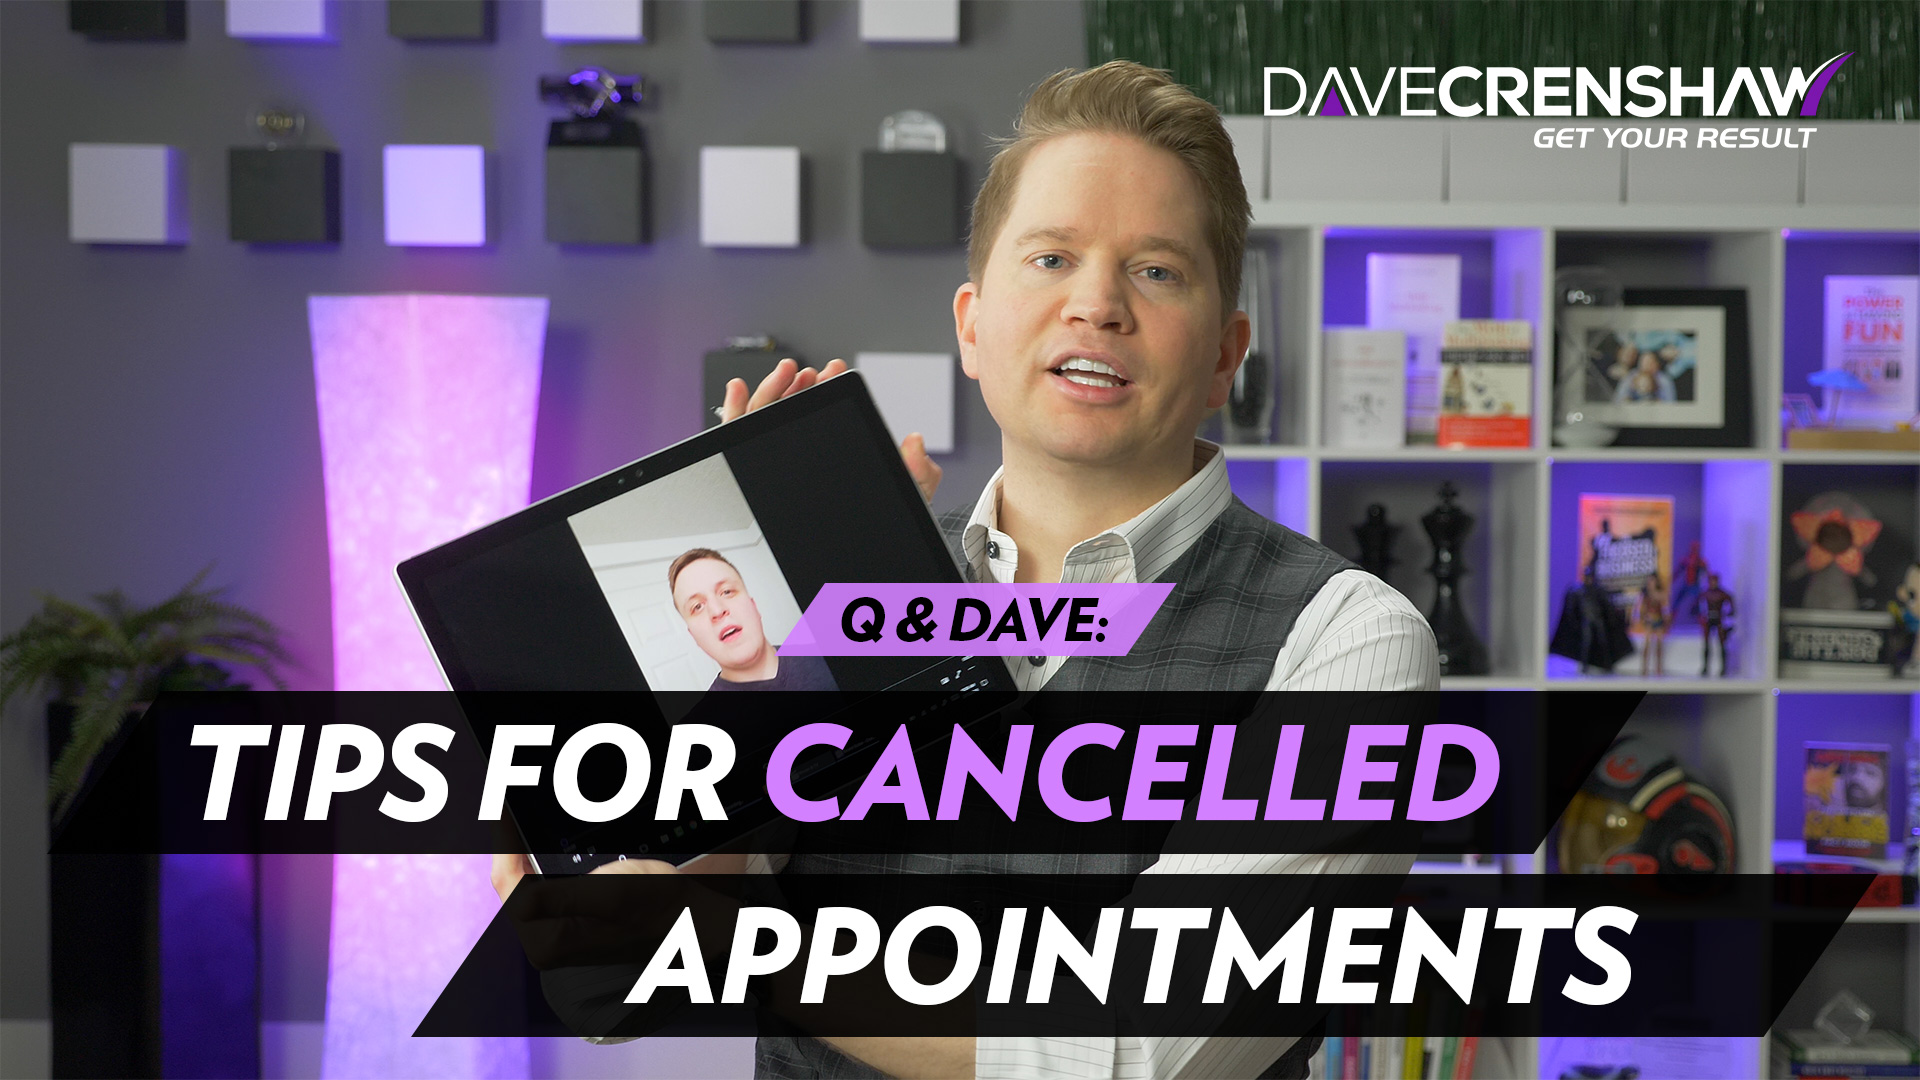 Q & Dave: Tips for cancelled appointments